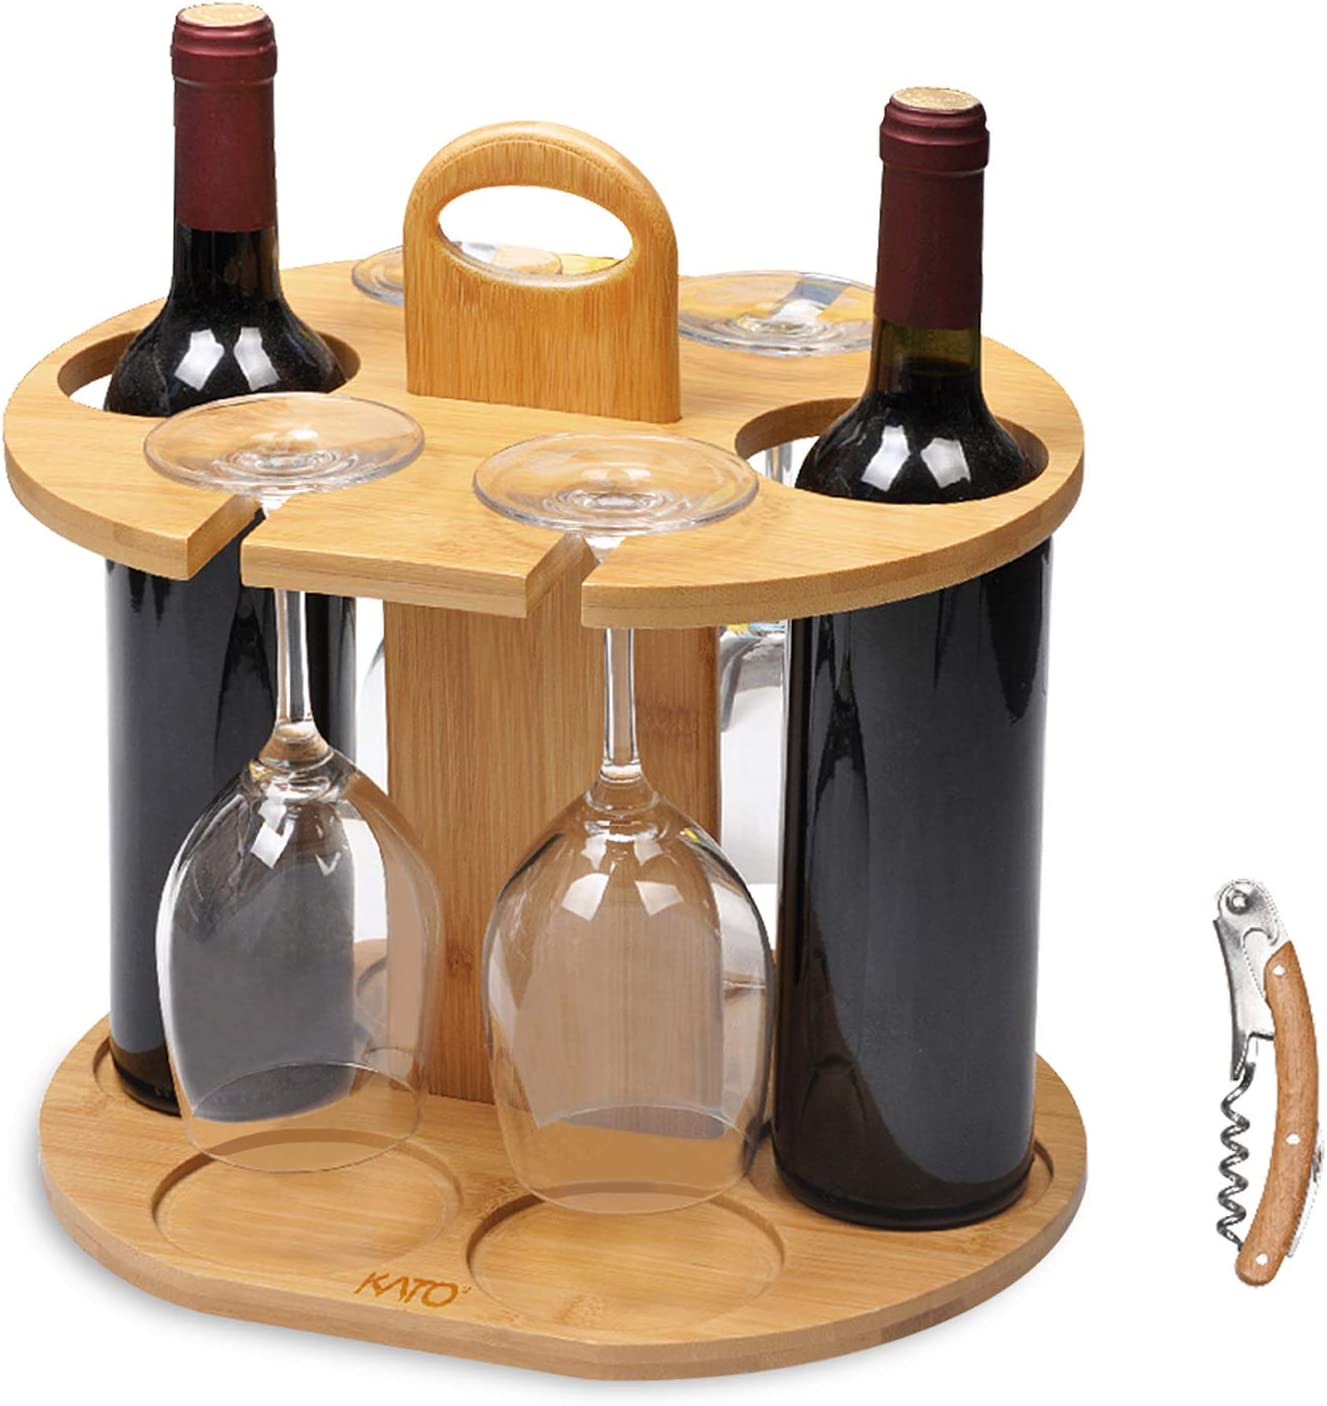 Wine Bottle Holder Glass Cup Rack W Handle Free Wood Handle Corkscrew Wine Organizer Bamboo Stand Countertop Tabletop Display Home Kitchen